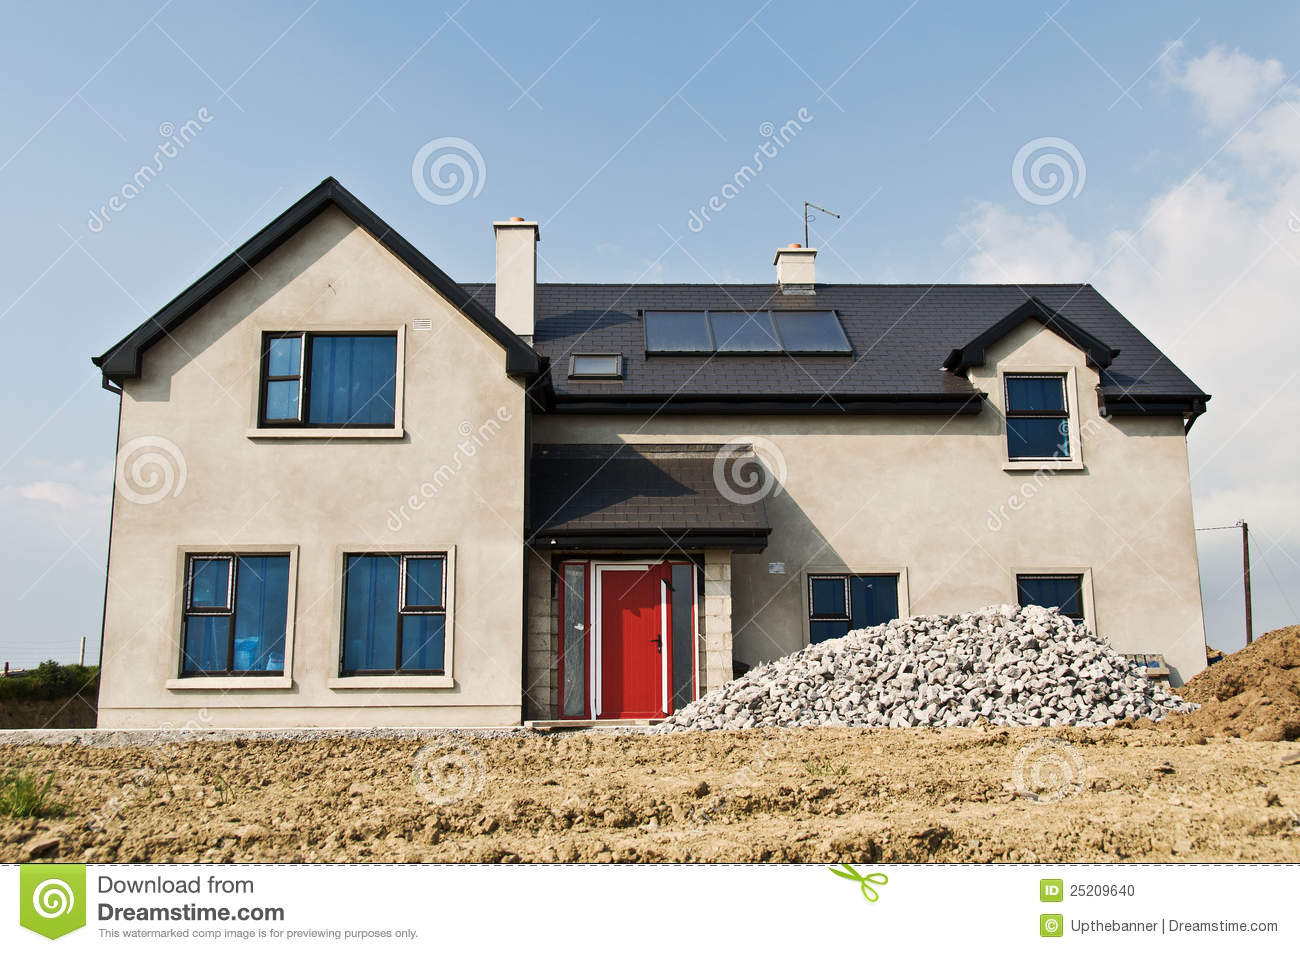 Cellular Concrete House Building For : New build concrete house stock photo image of home